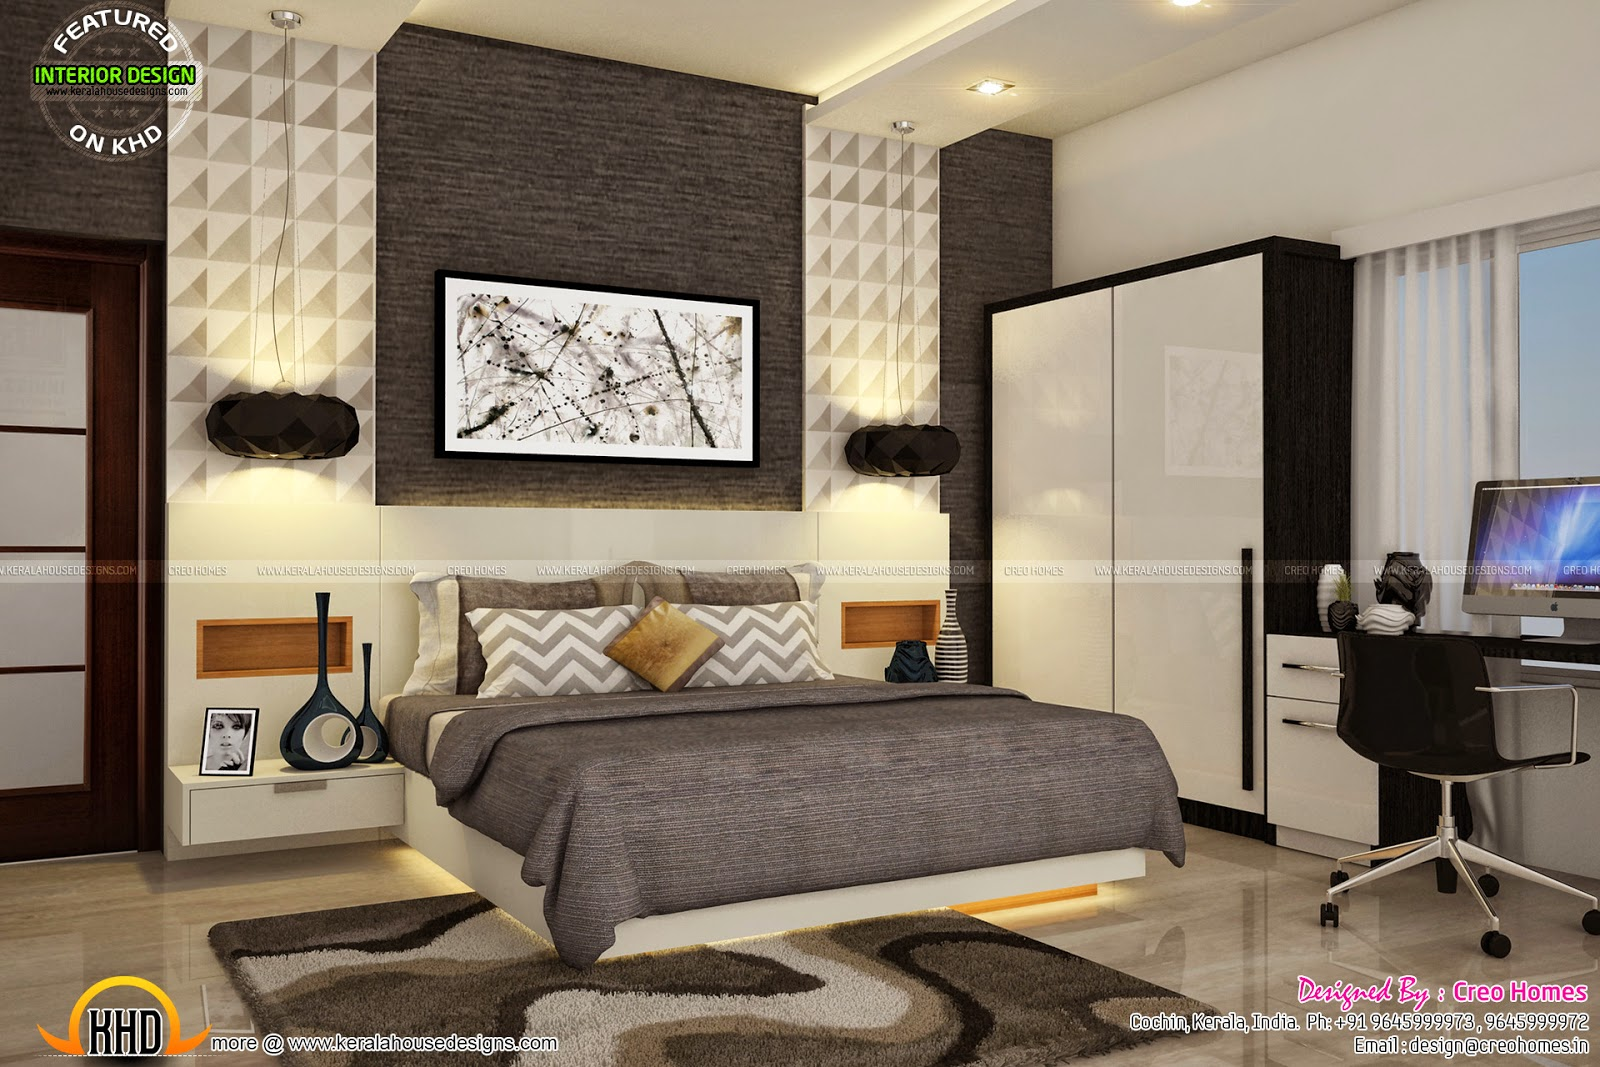 Home Design: Total Home Interior Solutions By Creo Homes